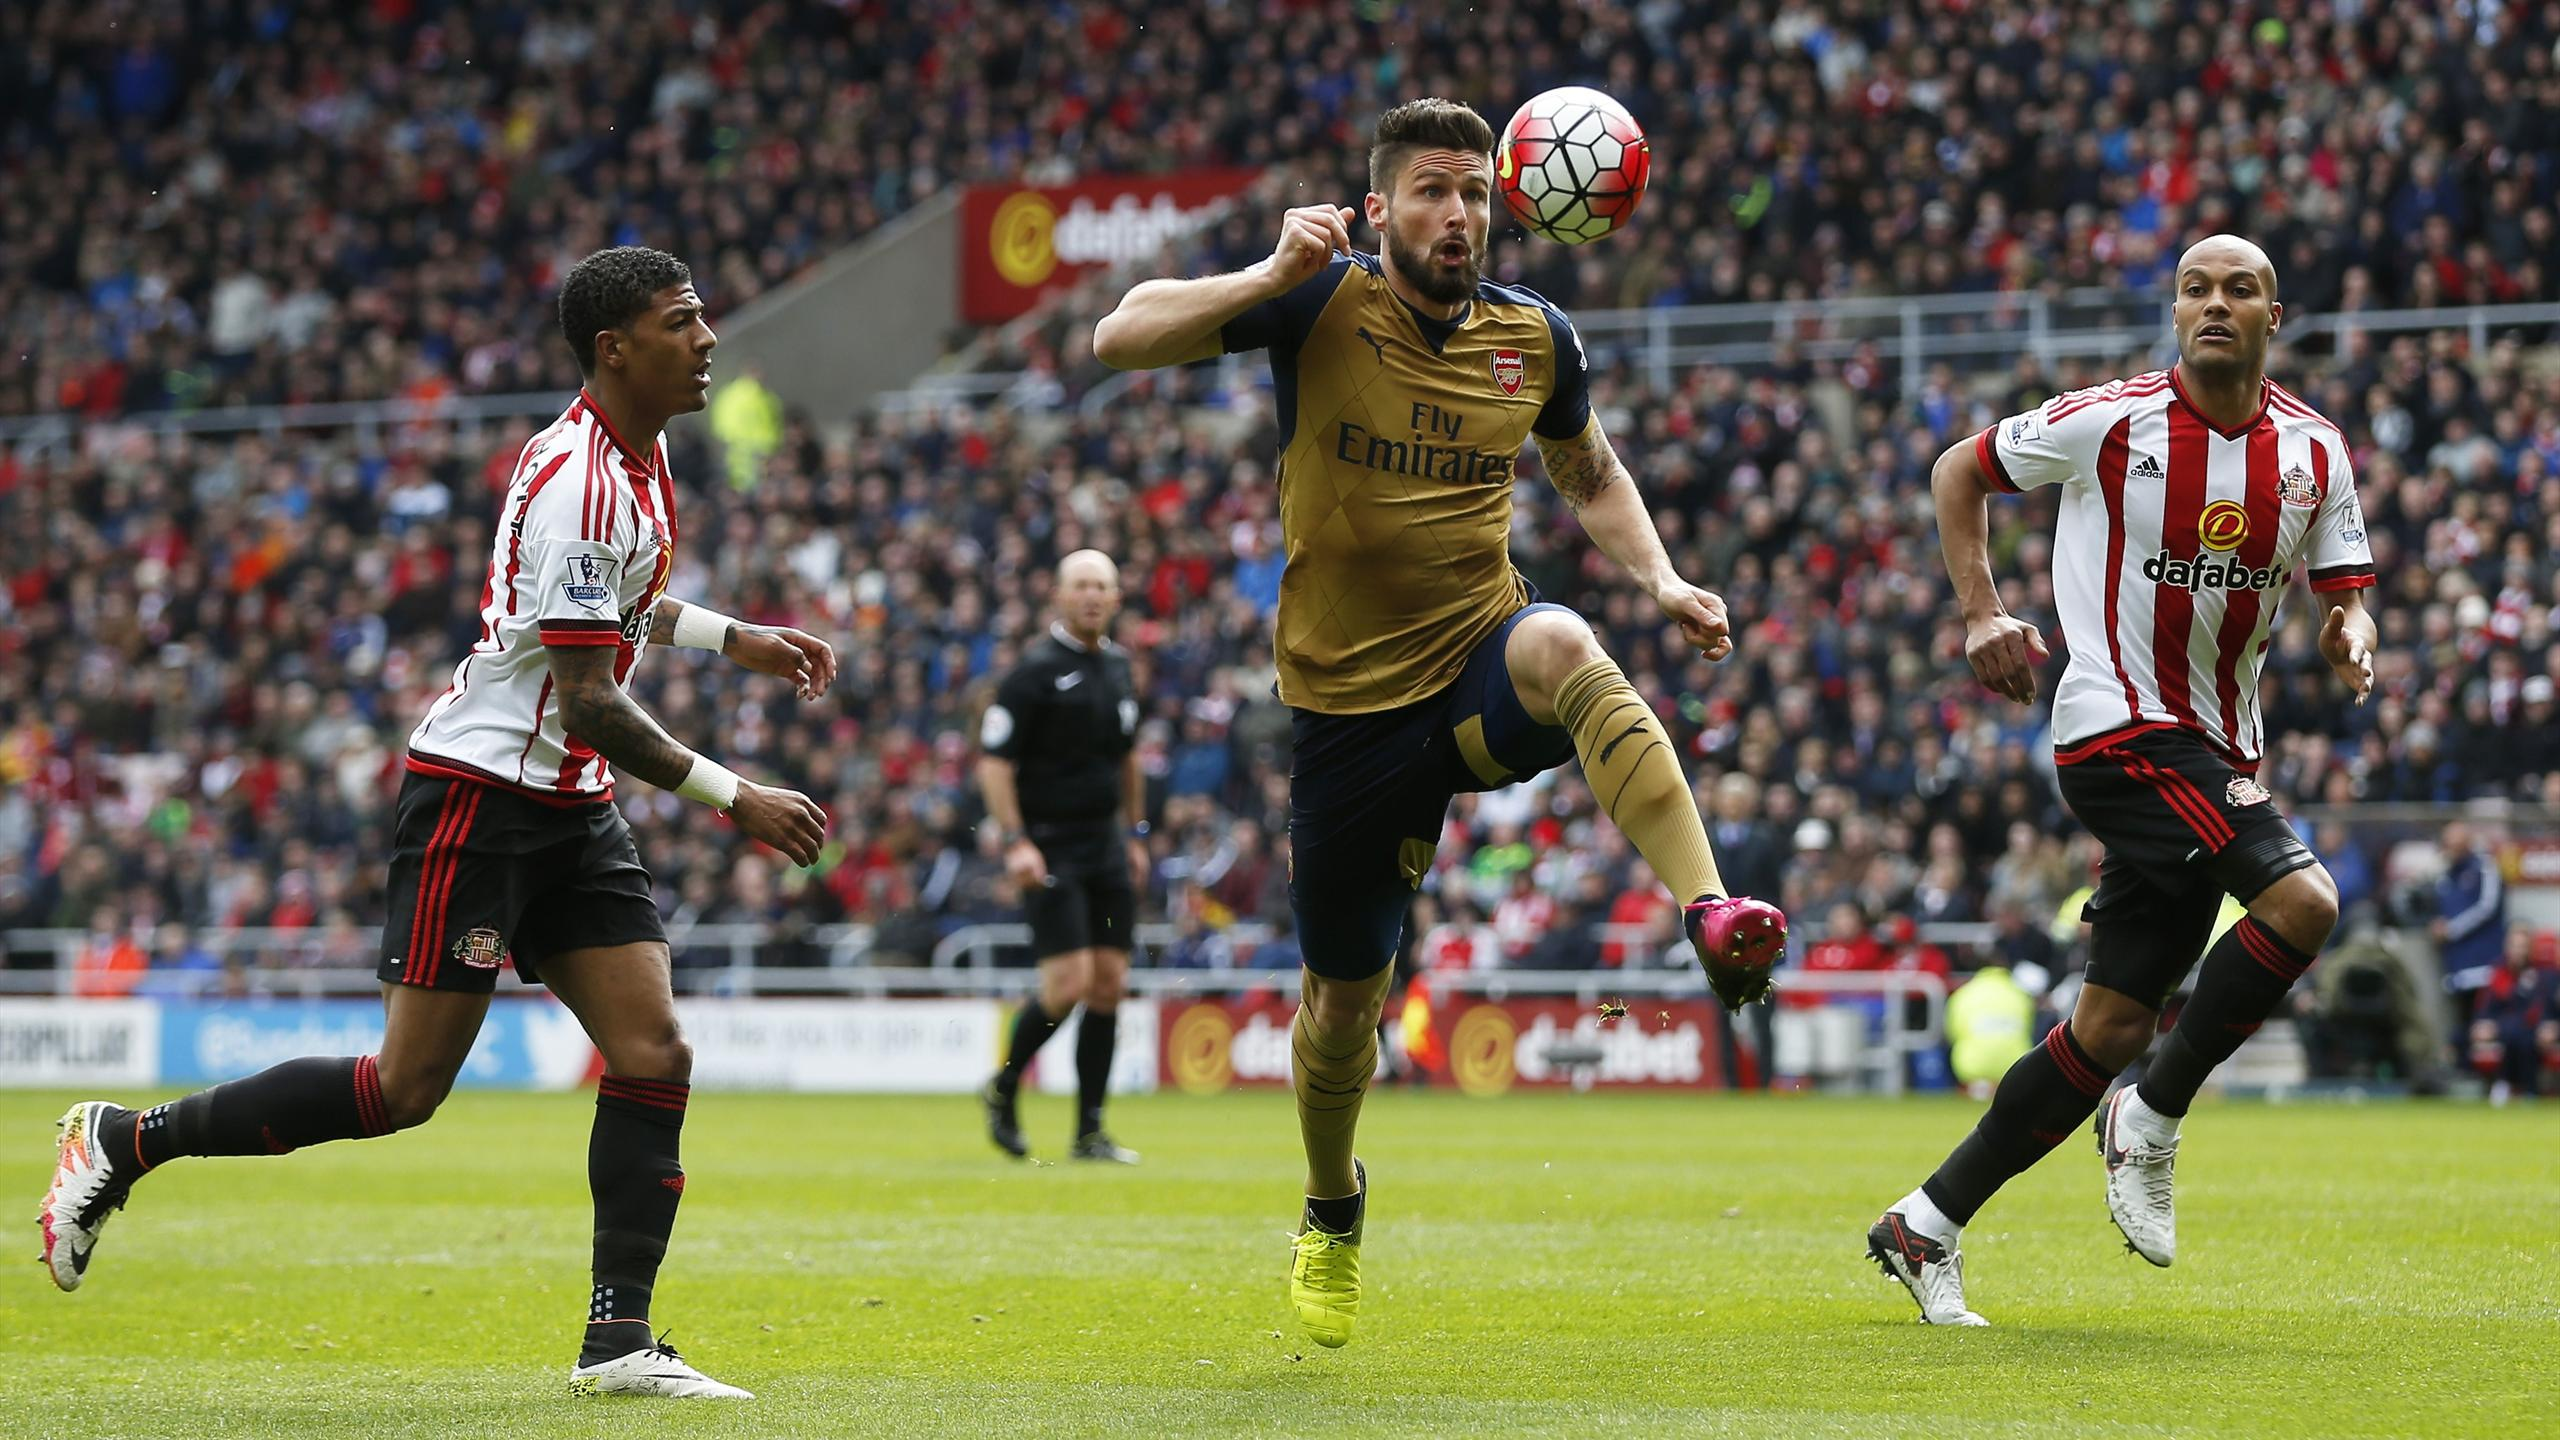 Arsenal's Olivier Giroud in action with Sunderland's Patrick van Aanholt and Younes Kaboul